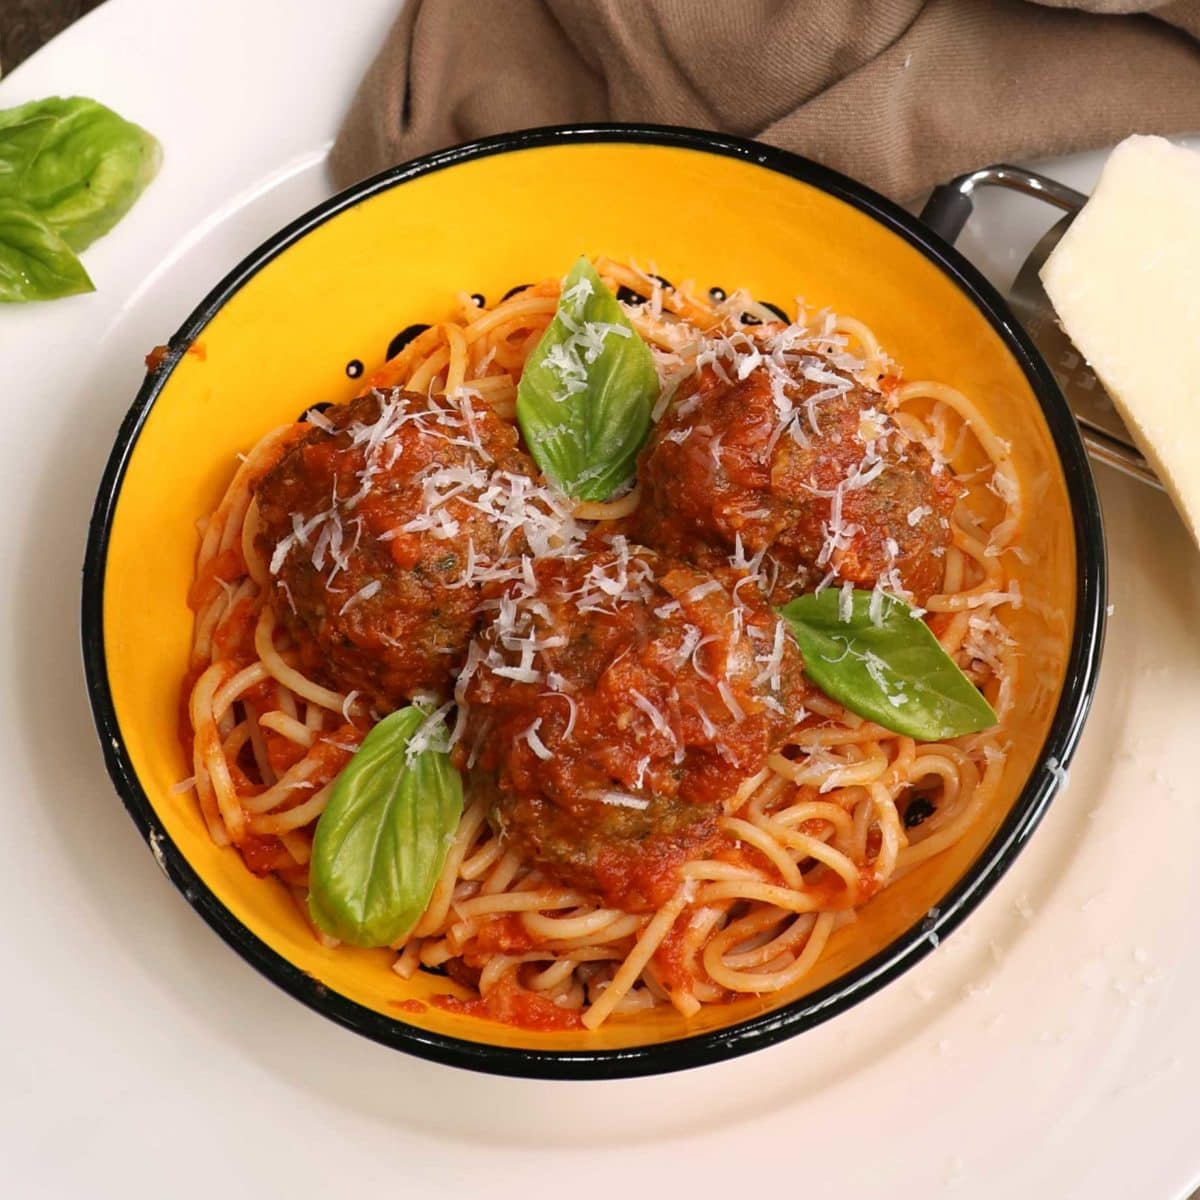 a yellow bowl filled with spaghetti and meatballs next to a wedge of fresh parmesan cheese and a brown napkin